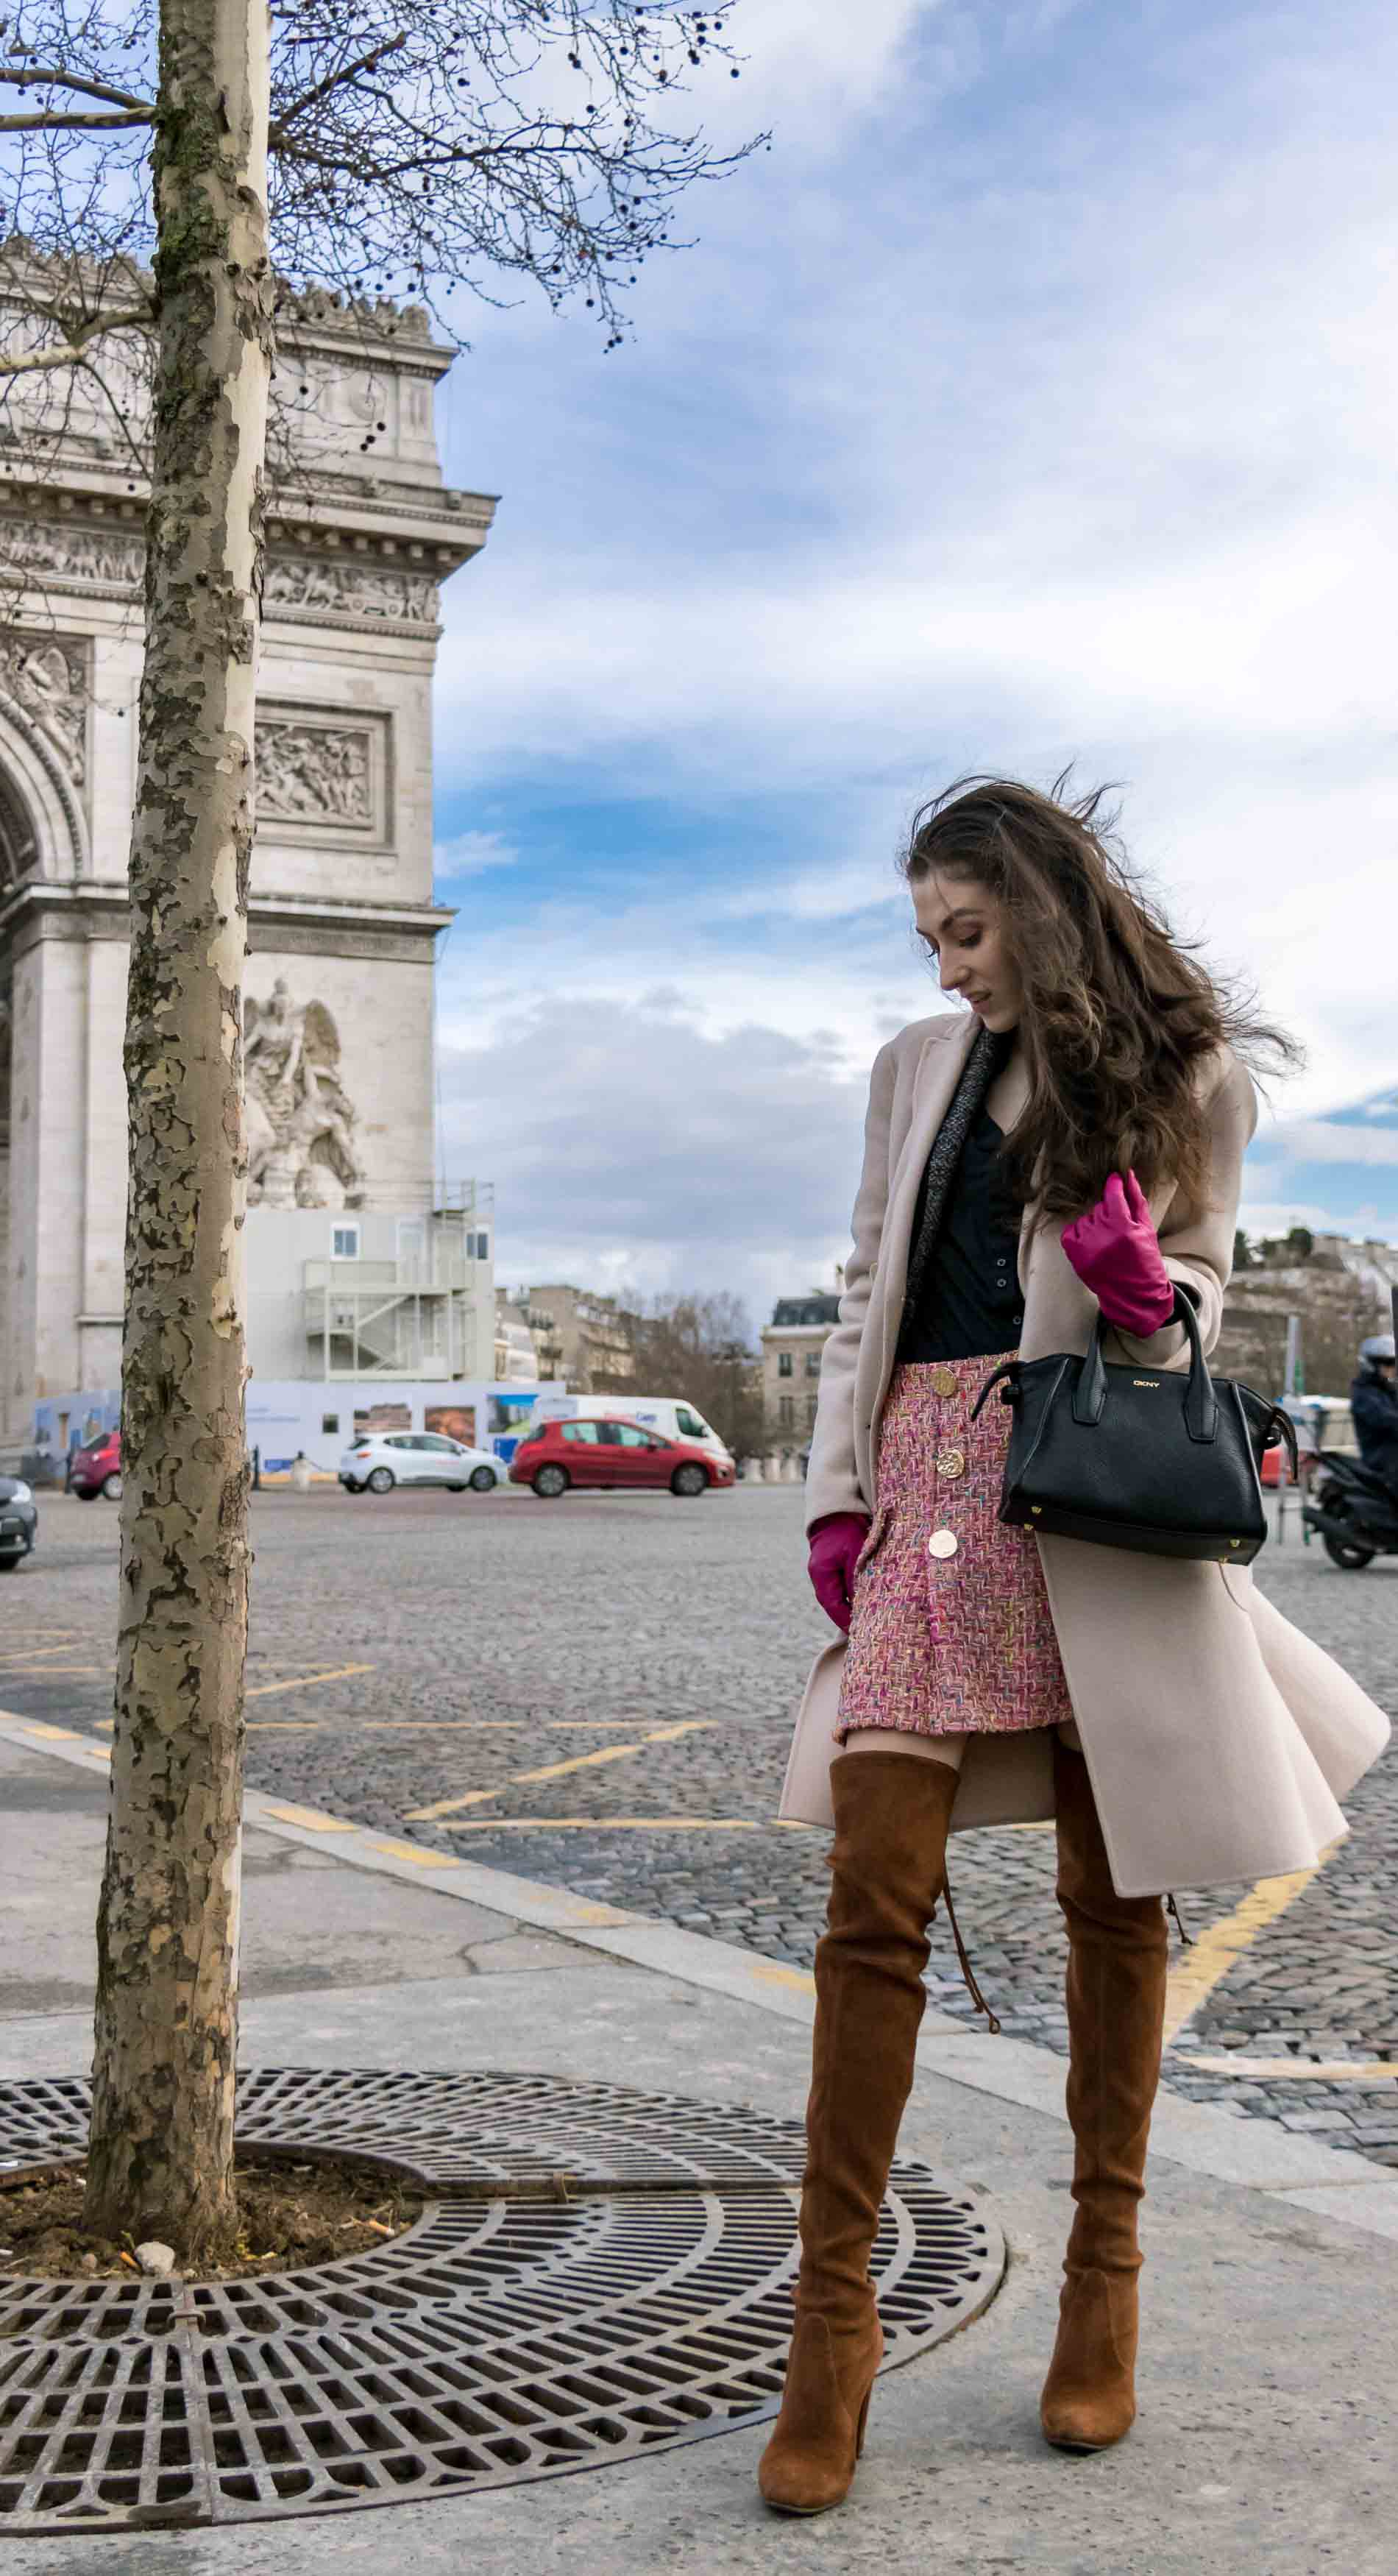 Fashion Blogger Veronika Lipar of Brunette from Wall Street wearing in Stuart Weitzman o tkboots, Weekend Maxmara coat, Storets pink tweed shorts, black shirt, pink leather gloves and black small bag during Paris fashion week autumn winter 2018/19 standing infant of the Arc du Triomphe